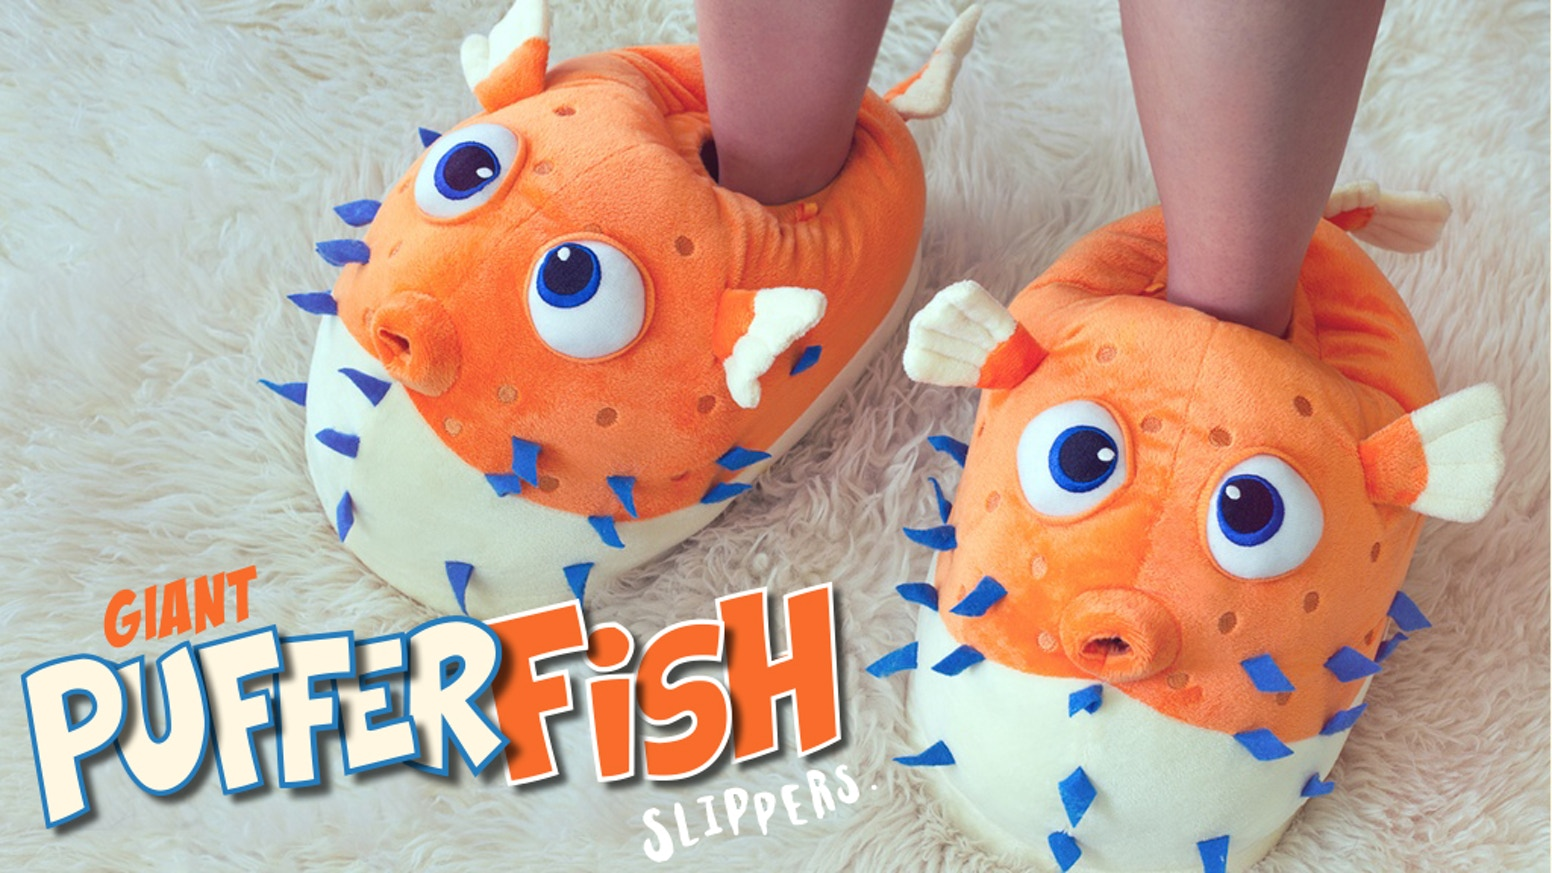 Help us turn the world's most underrated creature into the world's greatest slippers